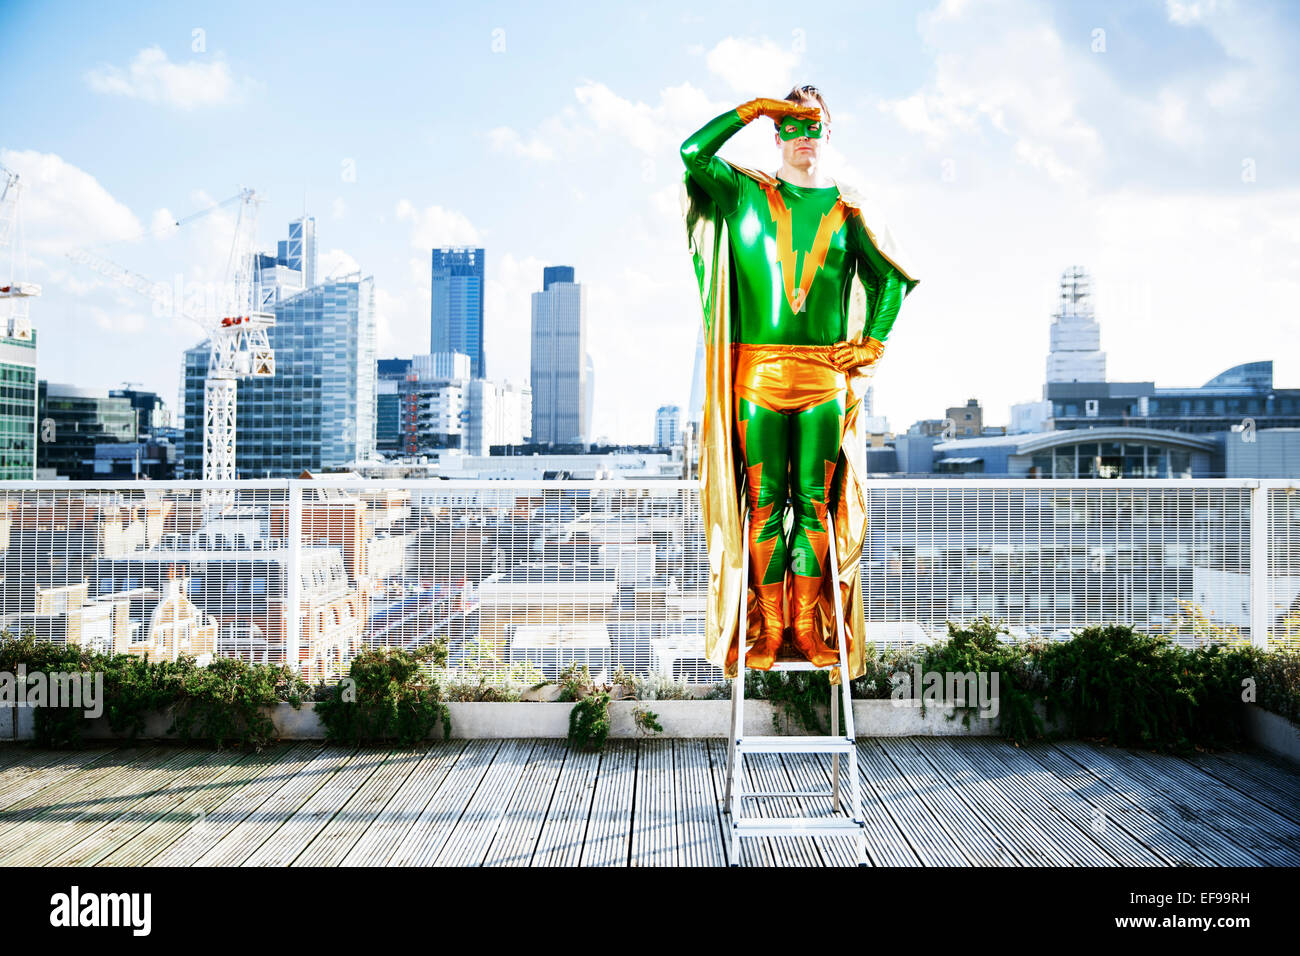 Superhero overlooking view from stepladder on city rooftop - Stock Image